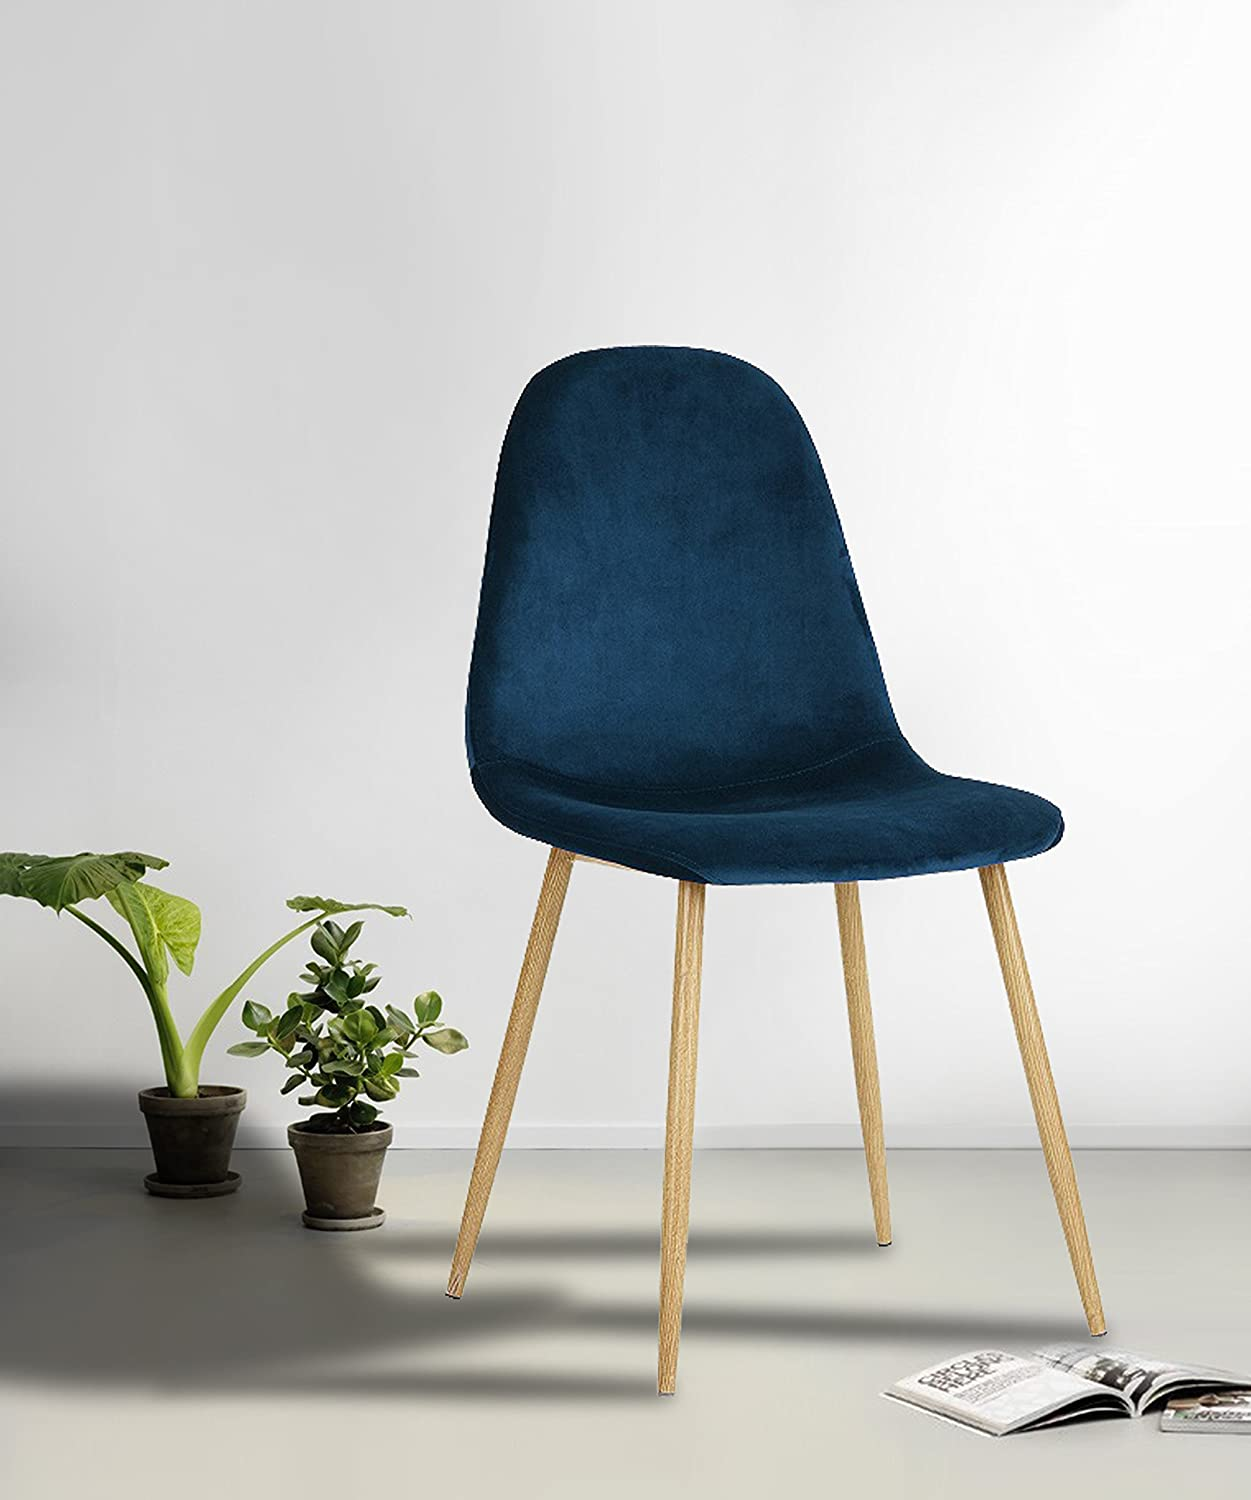 Set of 4 Mid-Century Style Side Chair Metal Legs Velvet Fabric Cushion Seat and Back for Dining Room Chairs in Navy